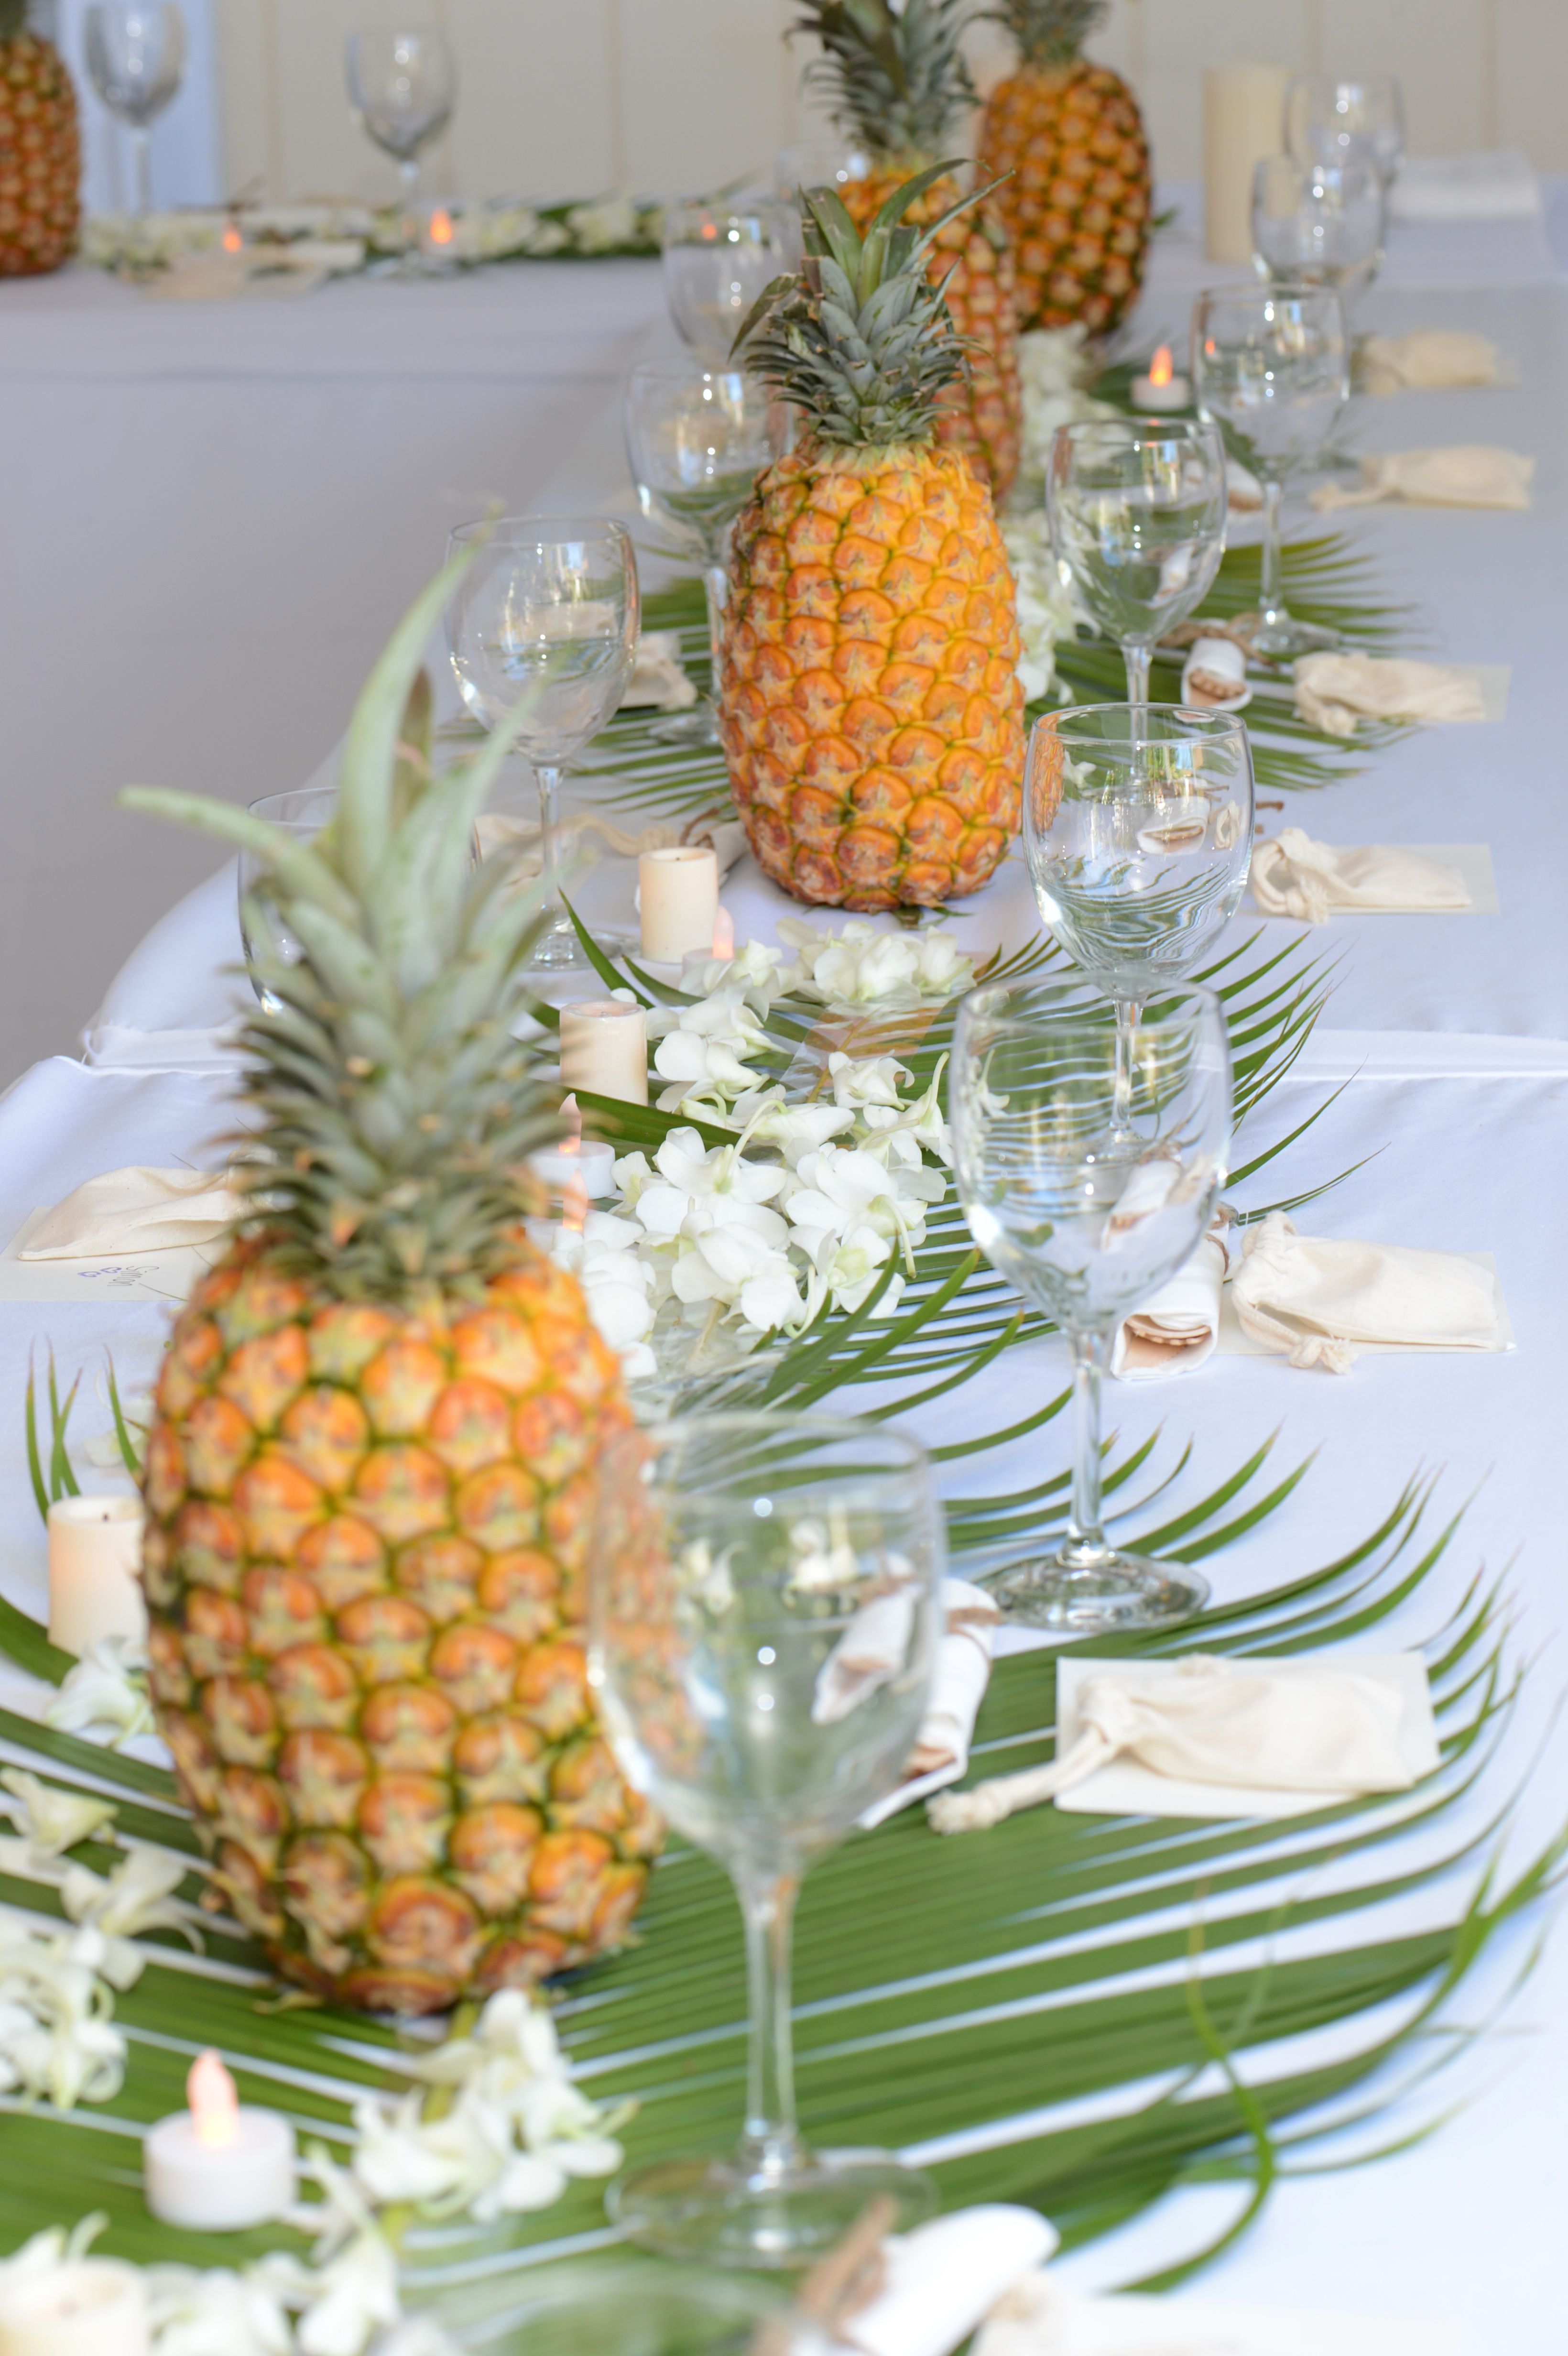 hawaii pineapples as table decor i would need to add flows though